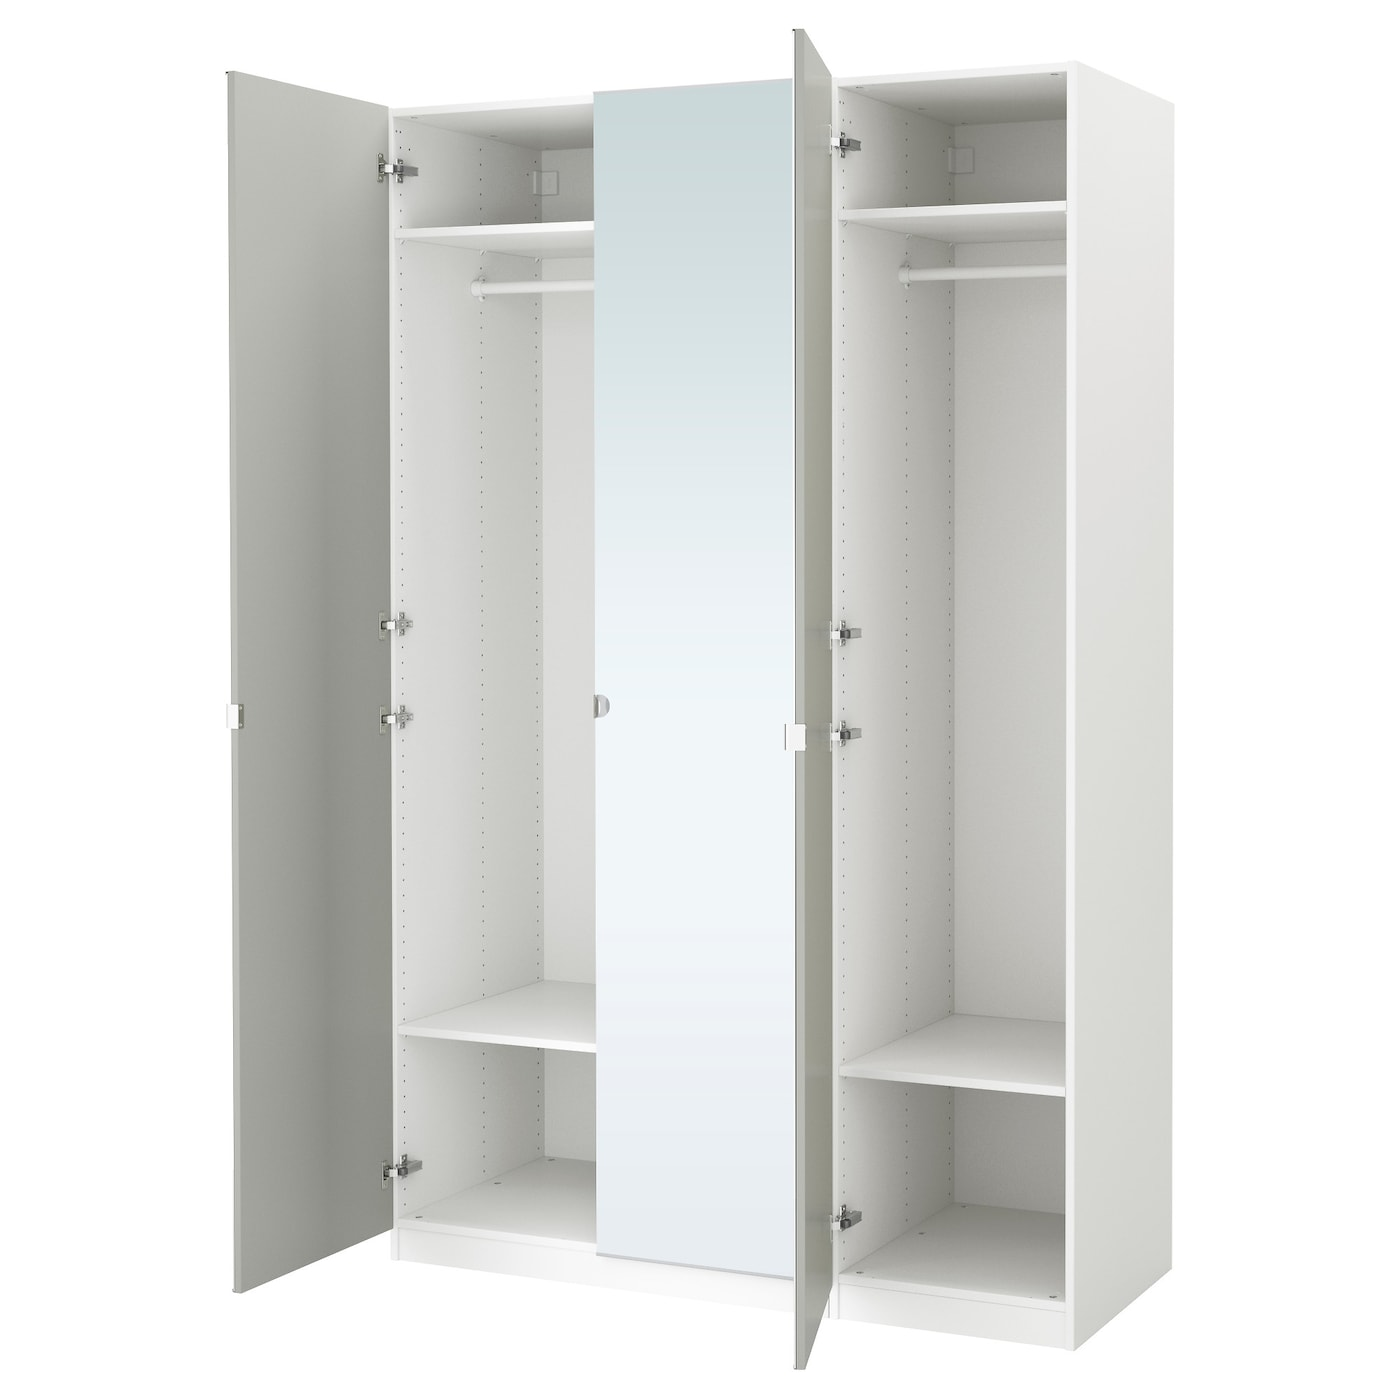 pax wardrobe white vikedal mirror glass 150x60x236 cm ikea. Black Bedroom Furniture Sets. Home Design Ideas